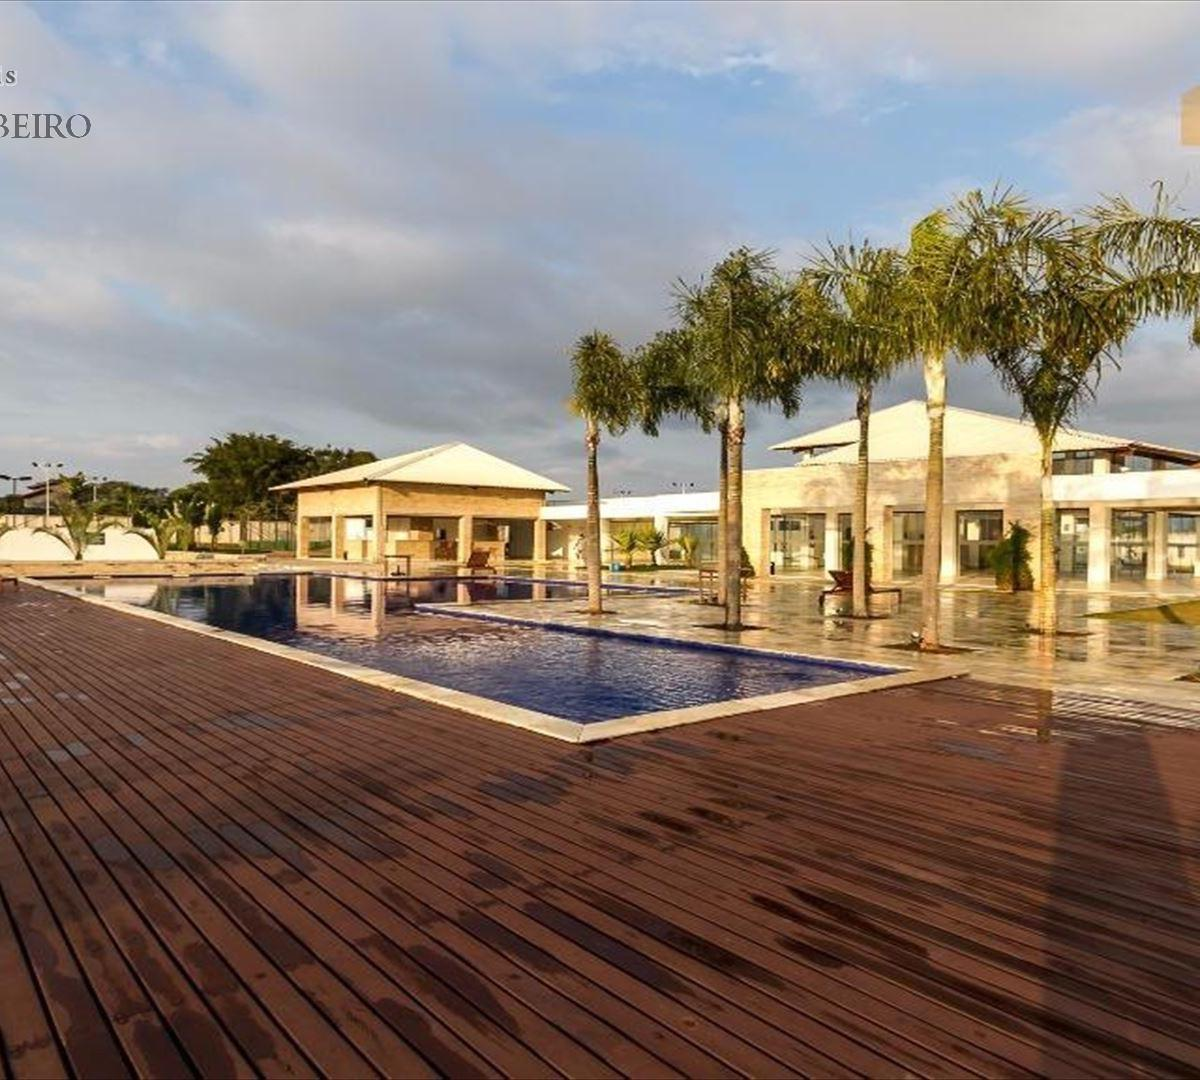 716300-RESIDENCIAL_OUROVILLE_16.jpg